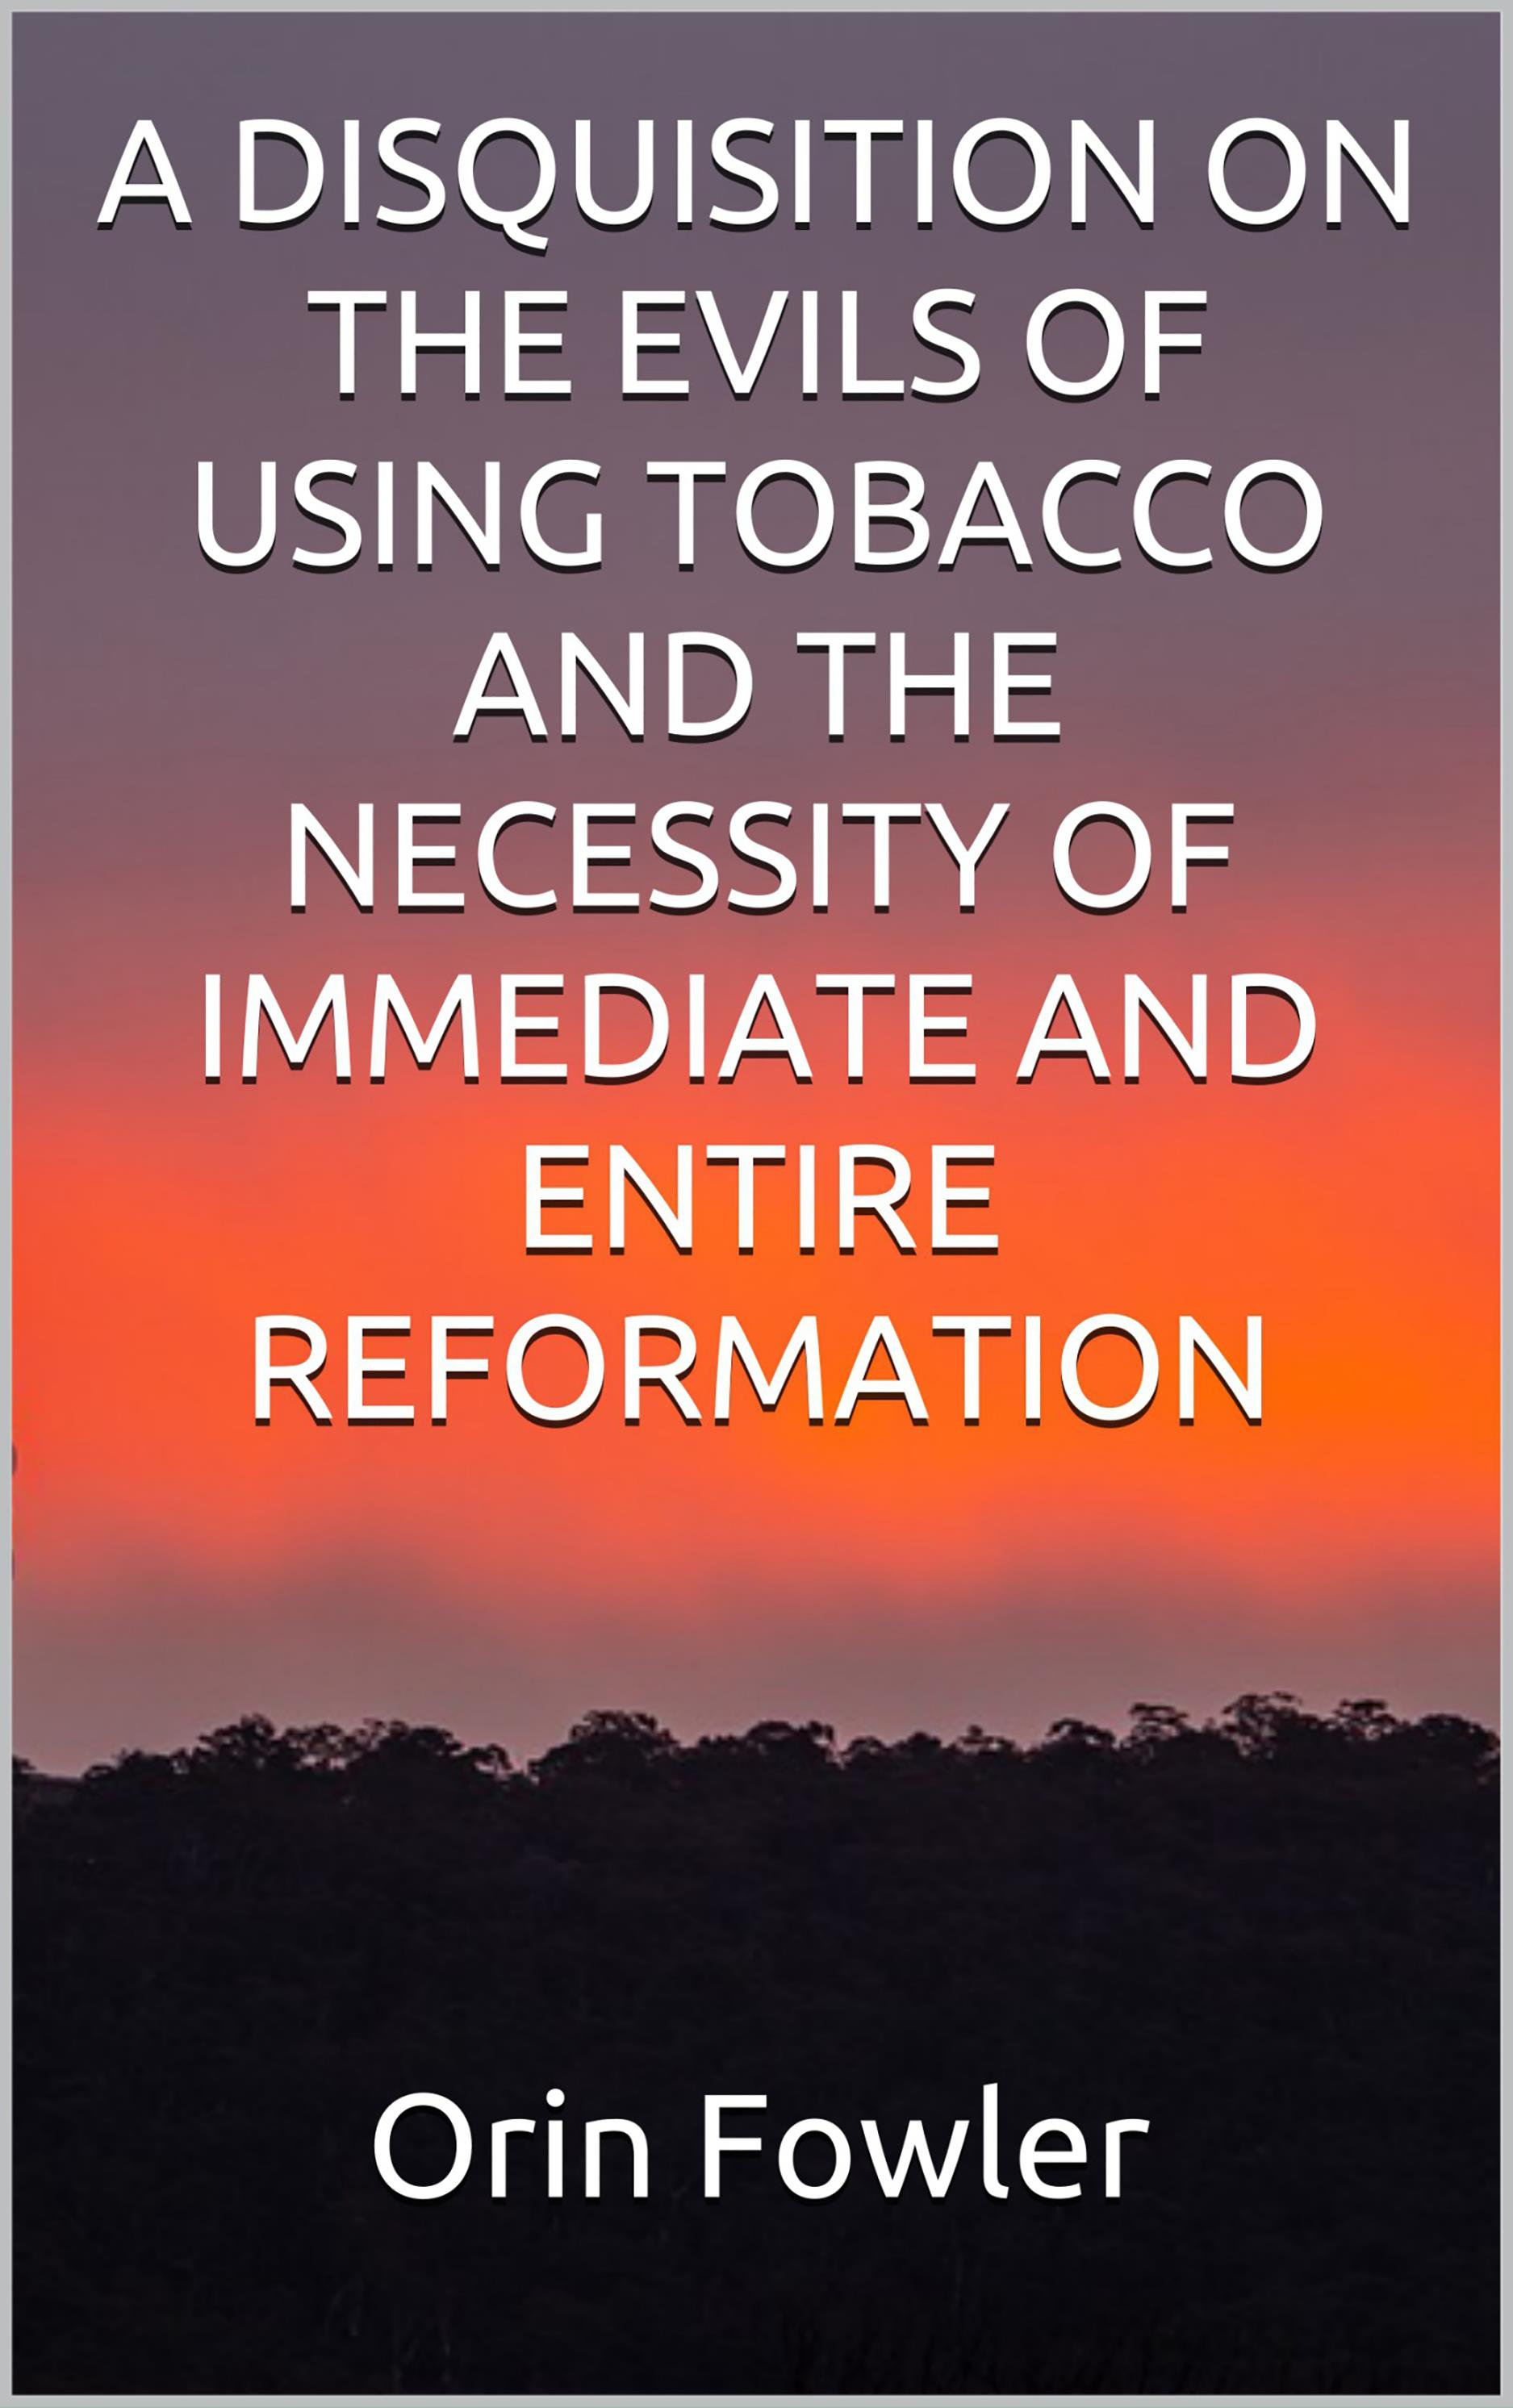 A Disquisition on the Evils of Using Tobacco and the Necessity of Immediate and Entire Reformation